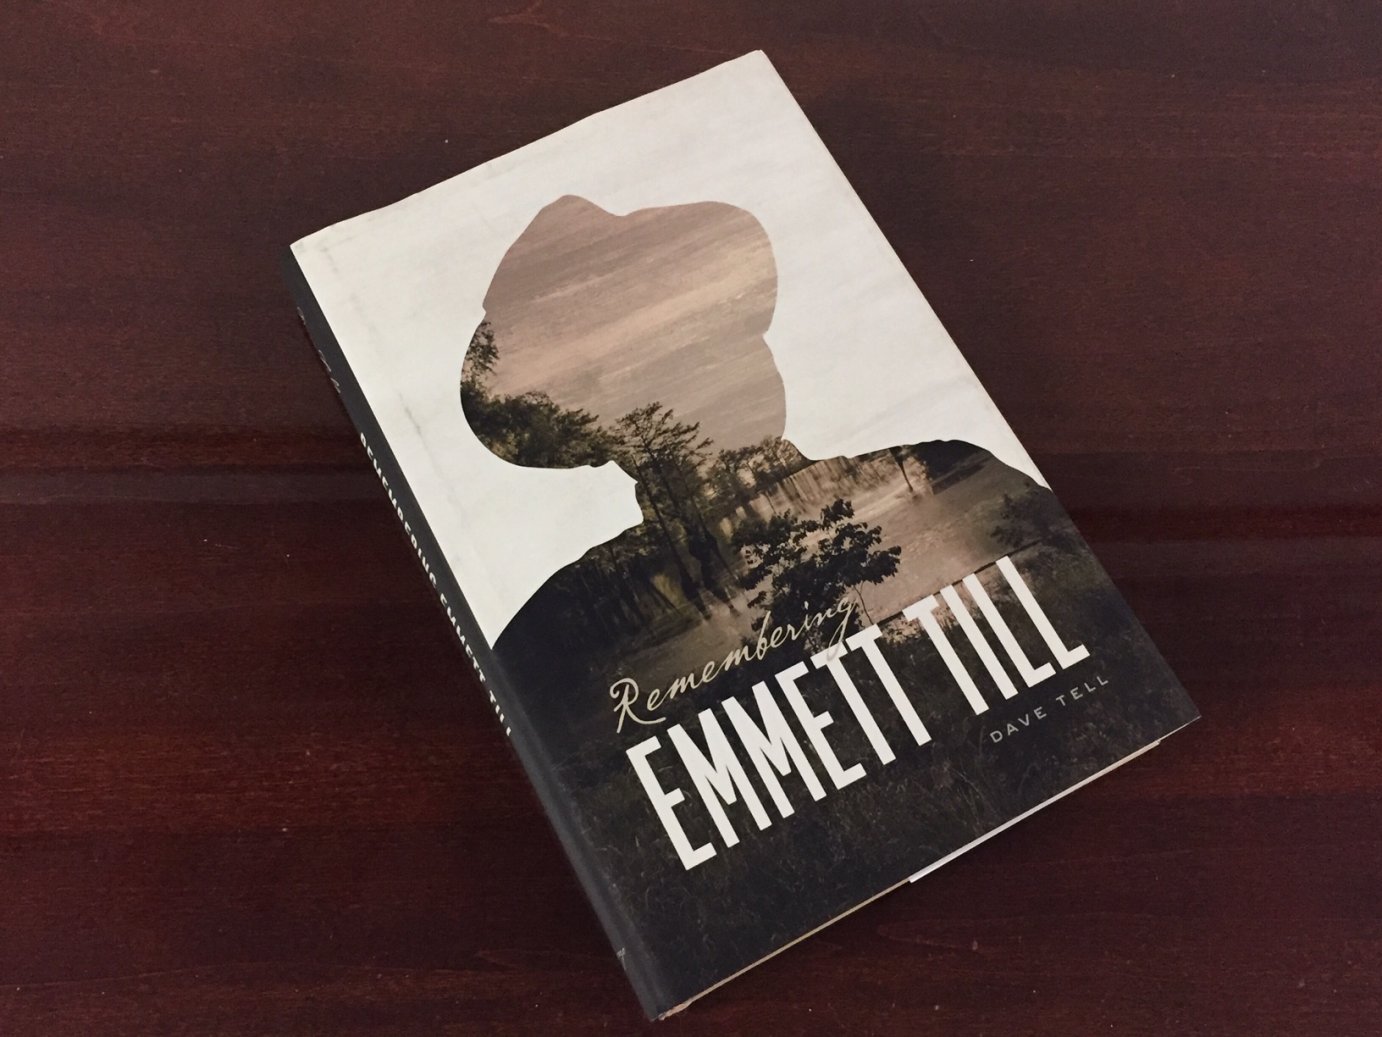 Remembering Emmett Till, by KU Professor Dave Tell (Photo by J. Schafer)